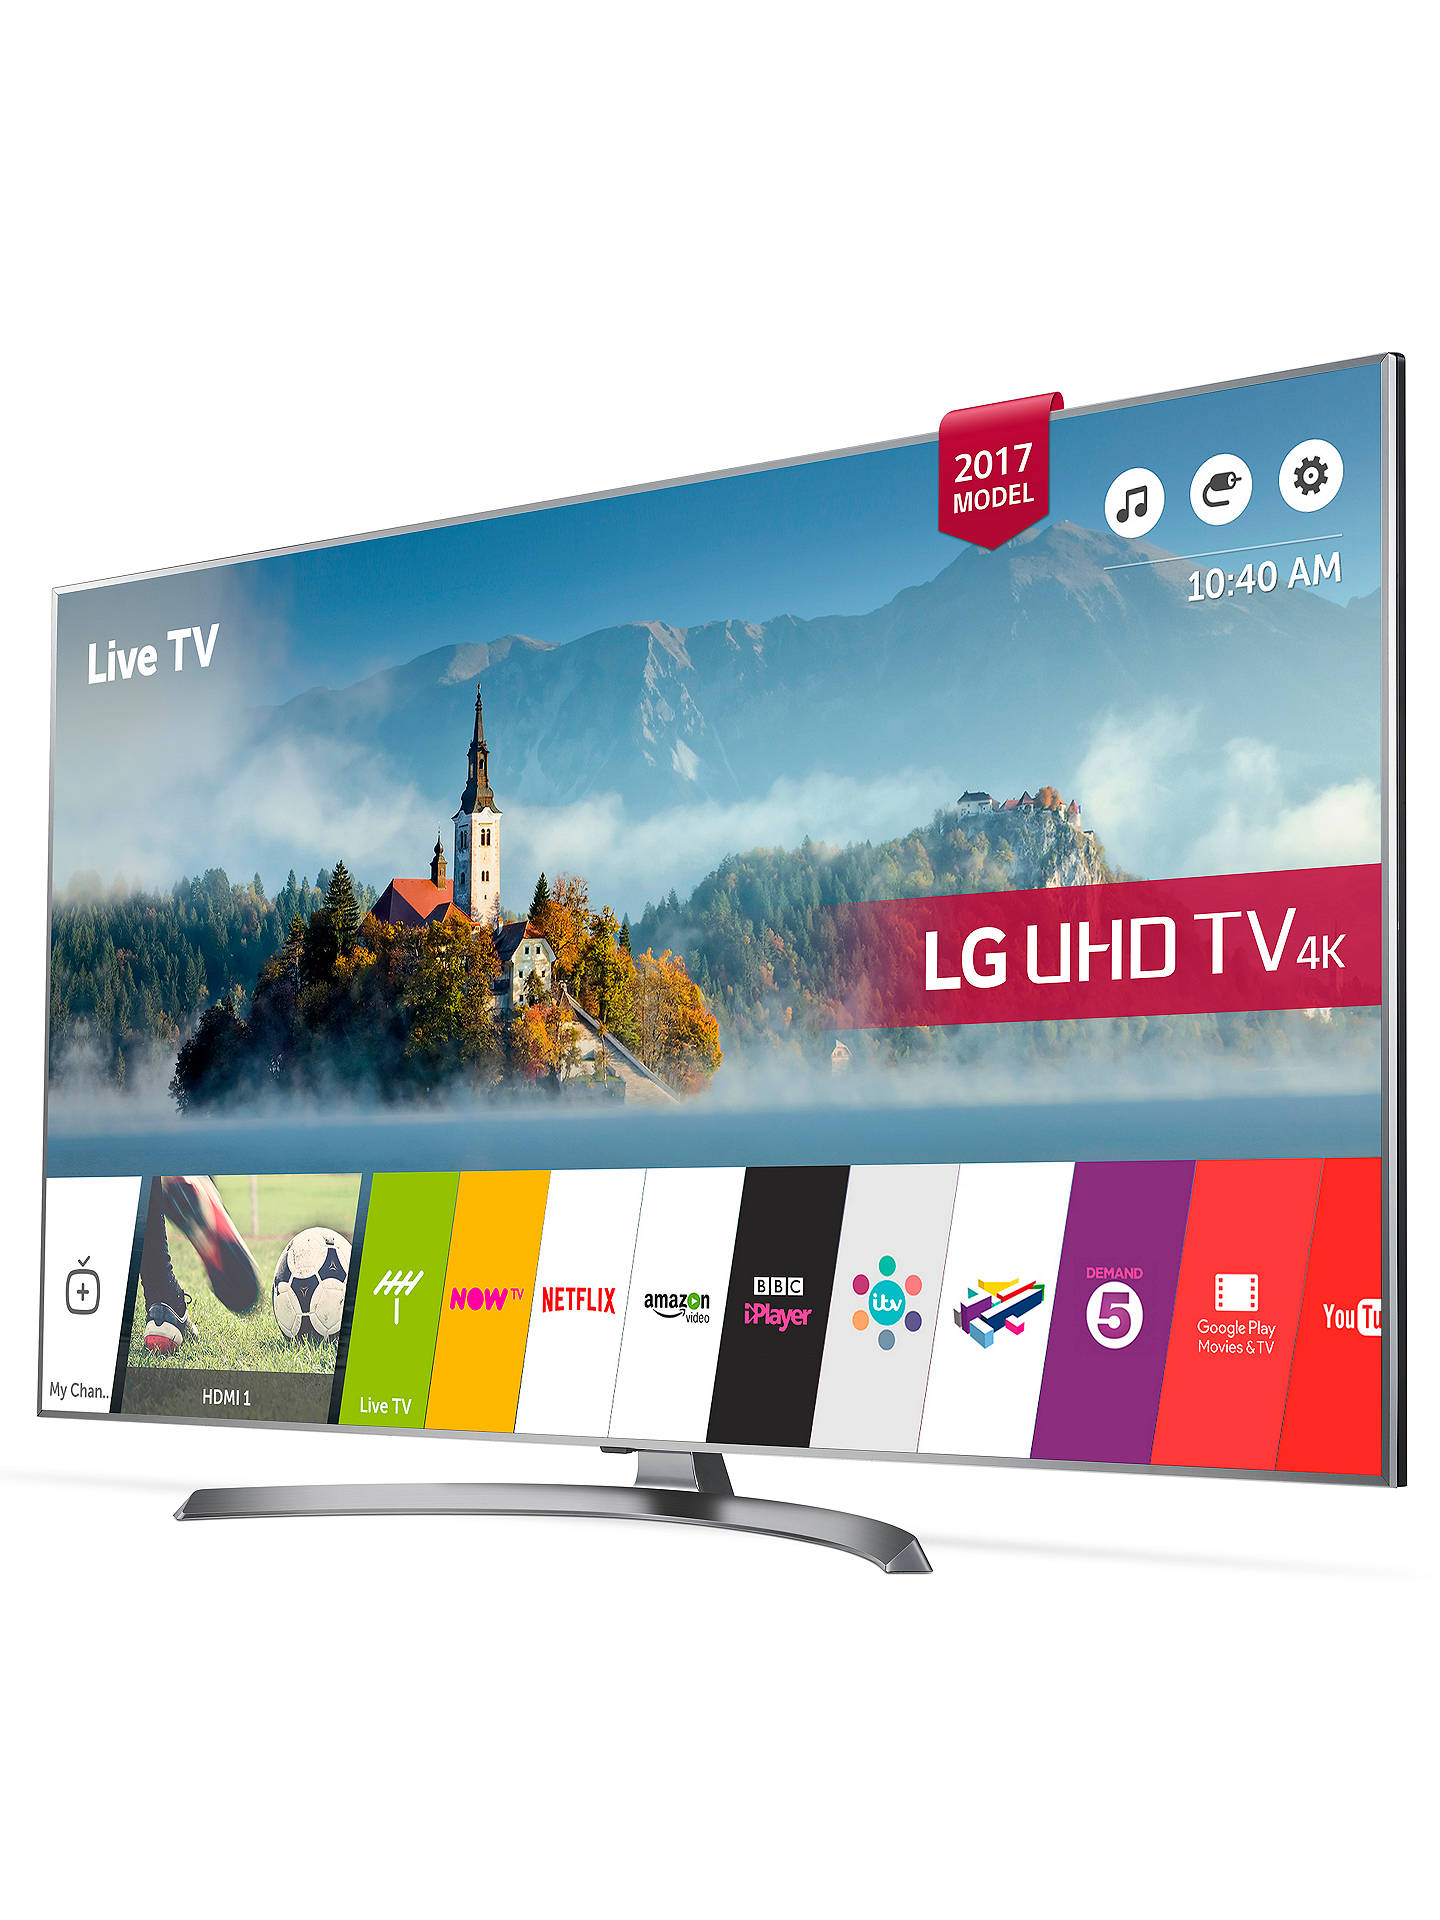 Lg 55uj750v Led Hdr 4k Ultra Hd Smart Tv 55 With Freeview Play W123 Instrument Cluster Printed Circuit Board Repairpaste2hgdiy Crescent Stand Silver Is No Longer Available Online